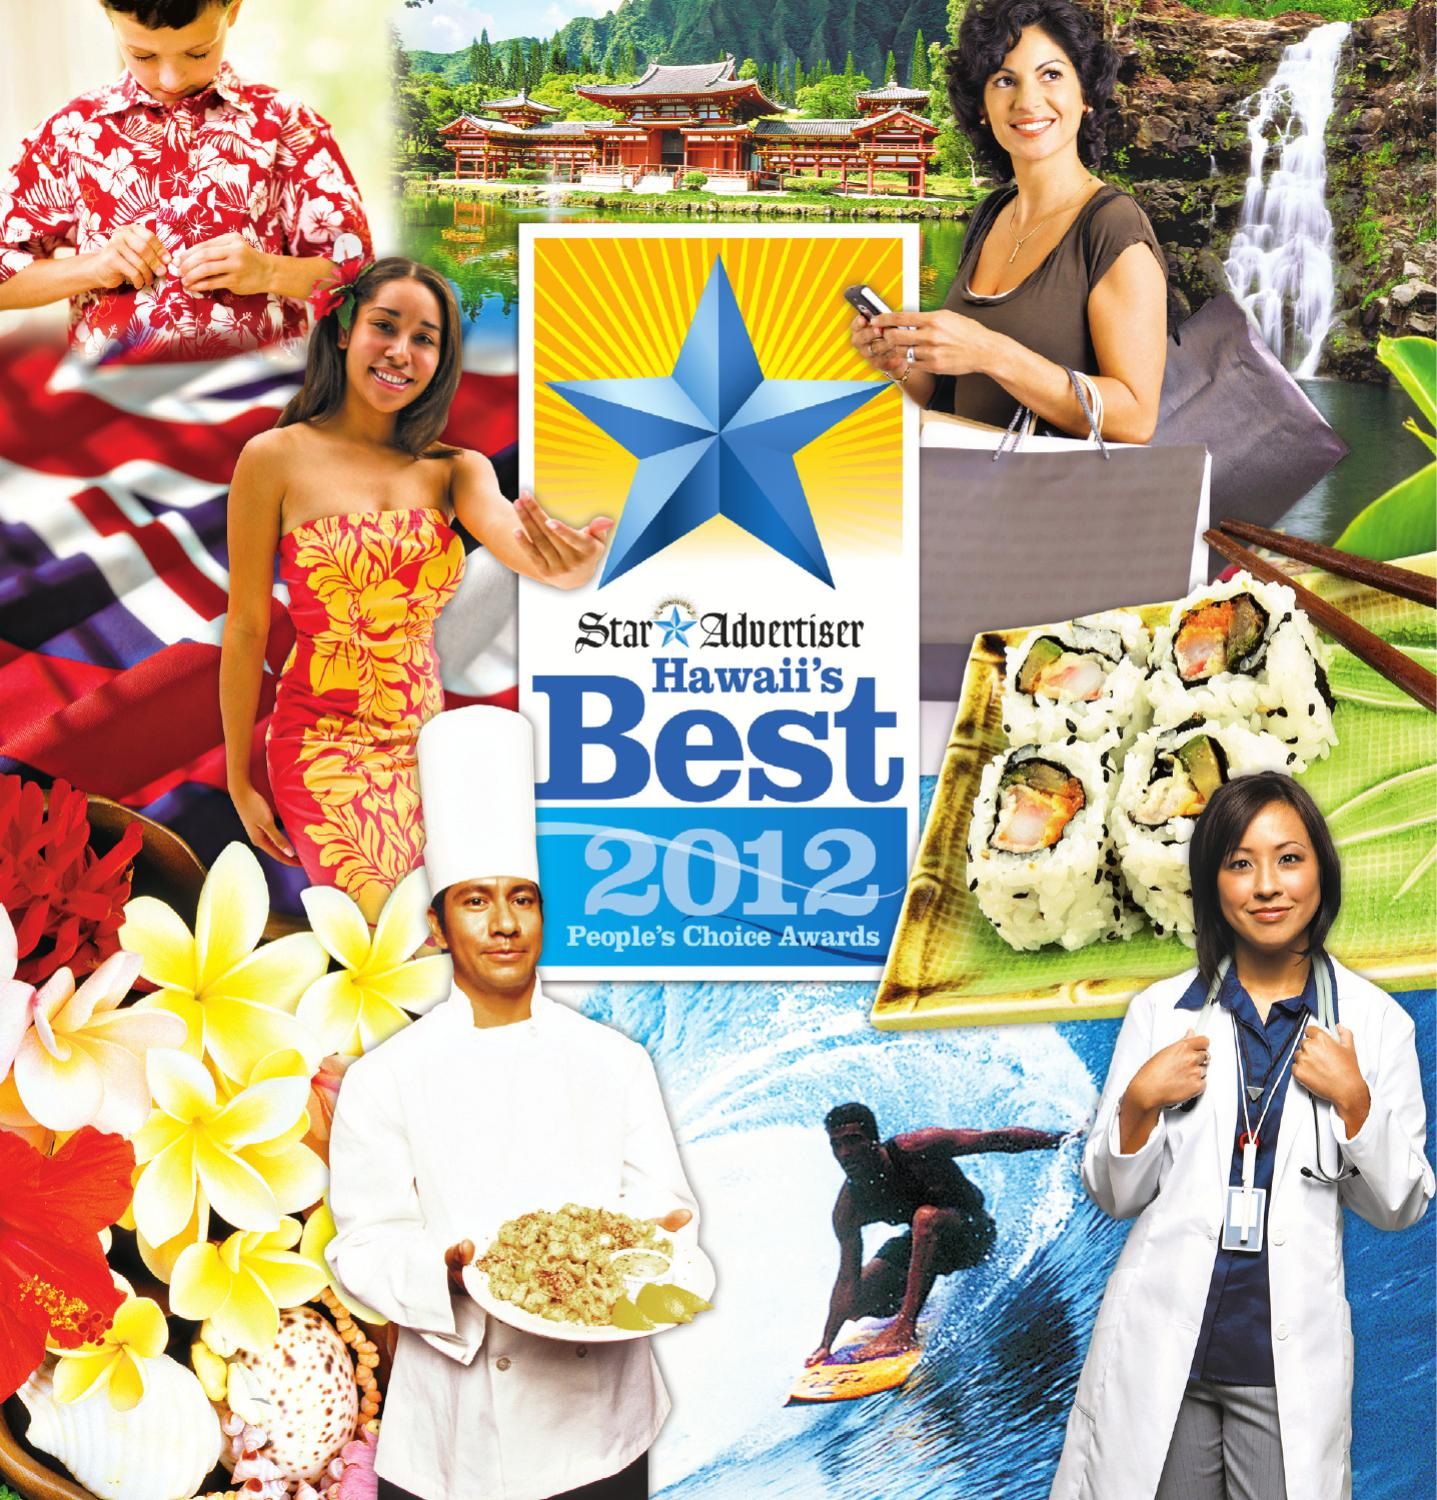 Hawaii's Best 2012 People's Choice Awards by Oahu